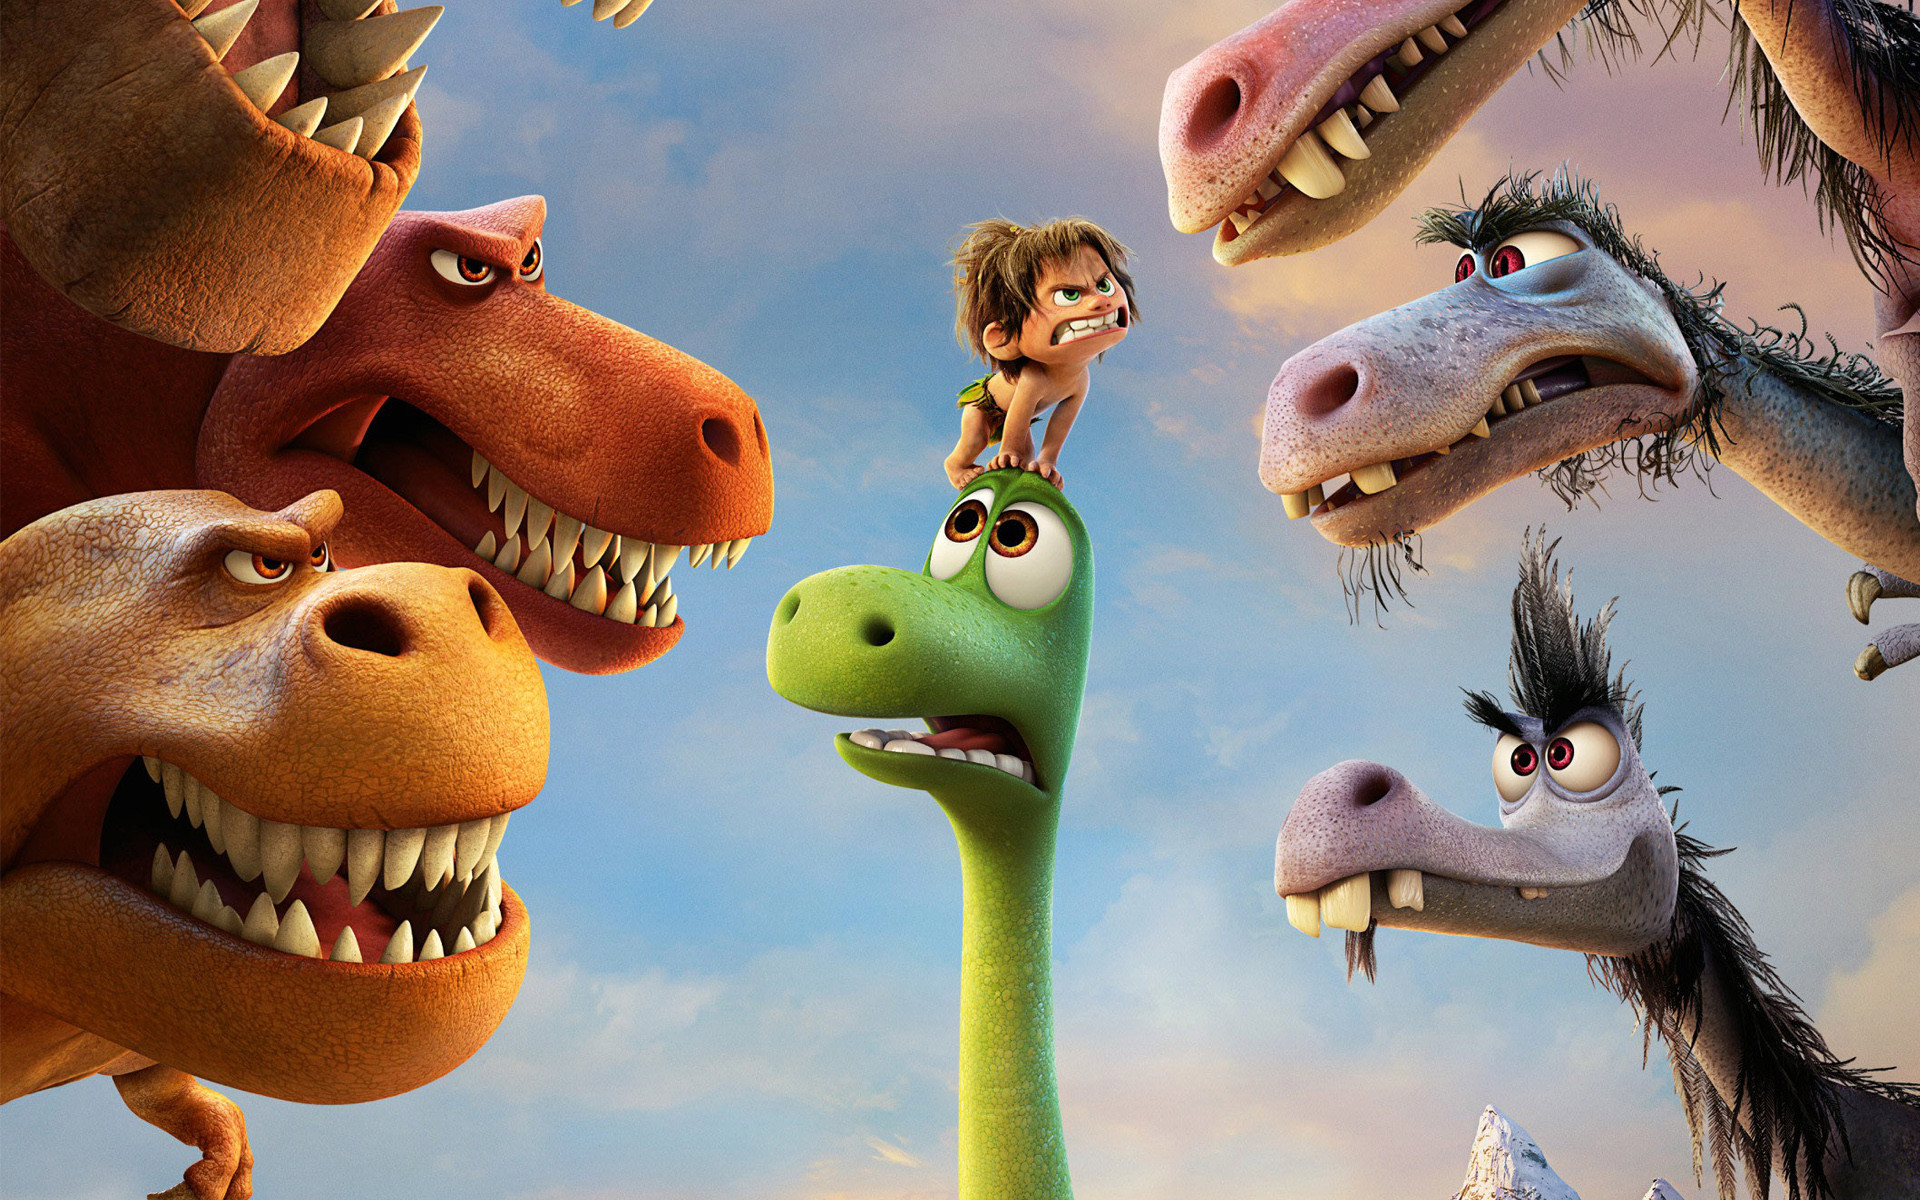 1920x1200 The Good Dinosaur 2015 Movie